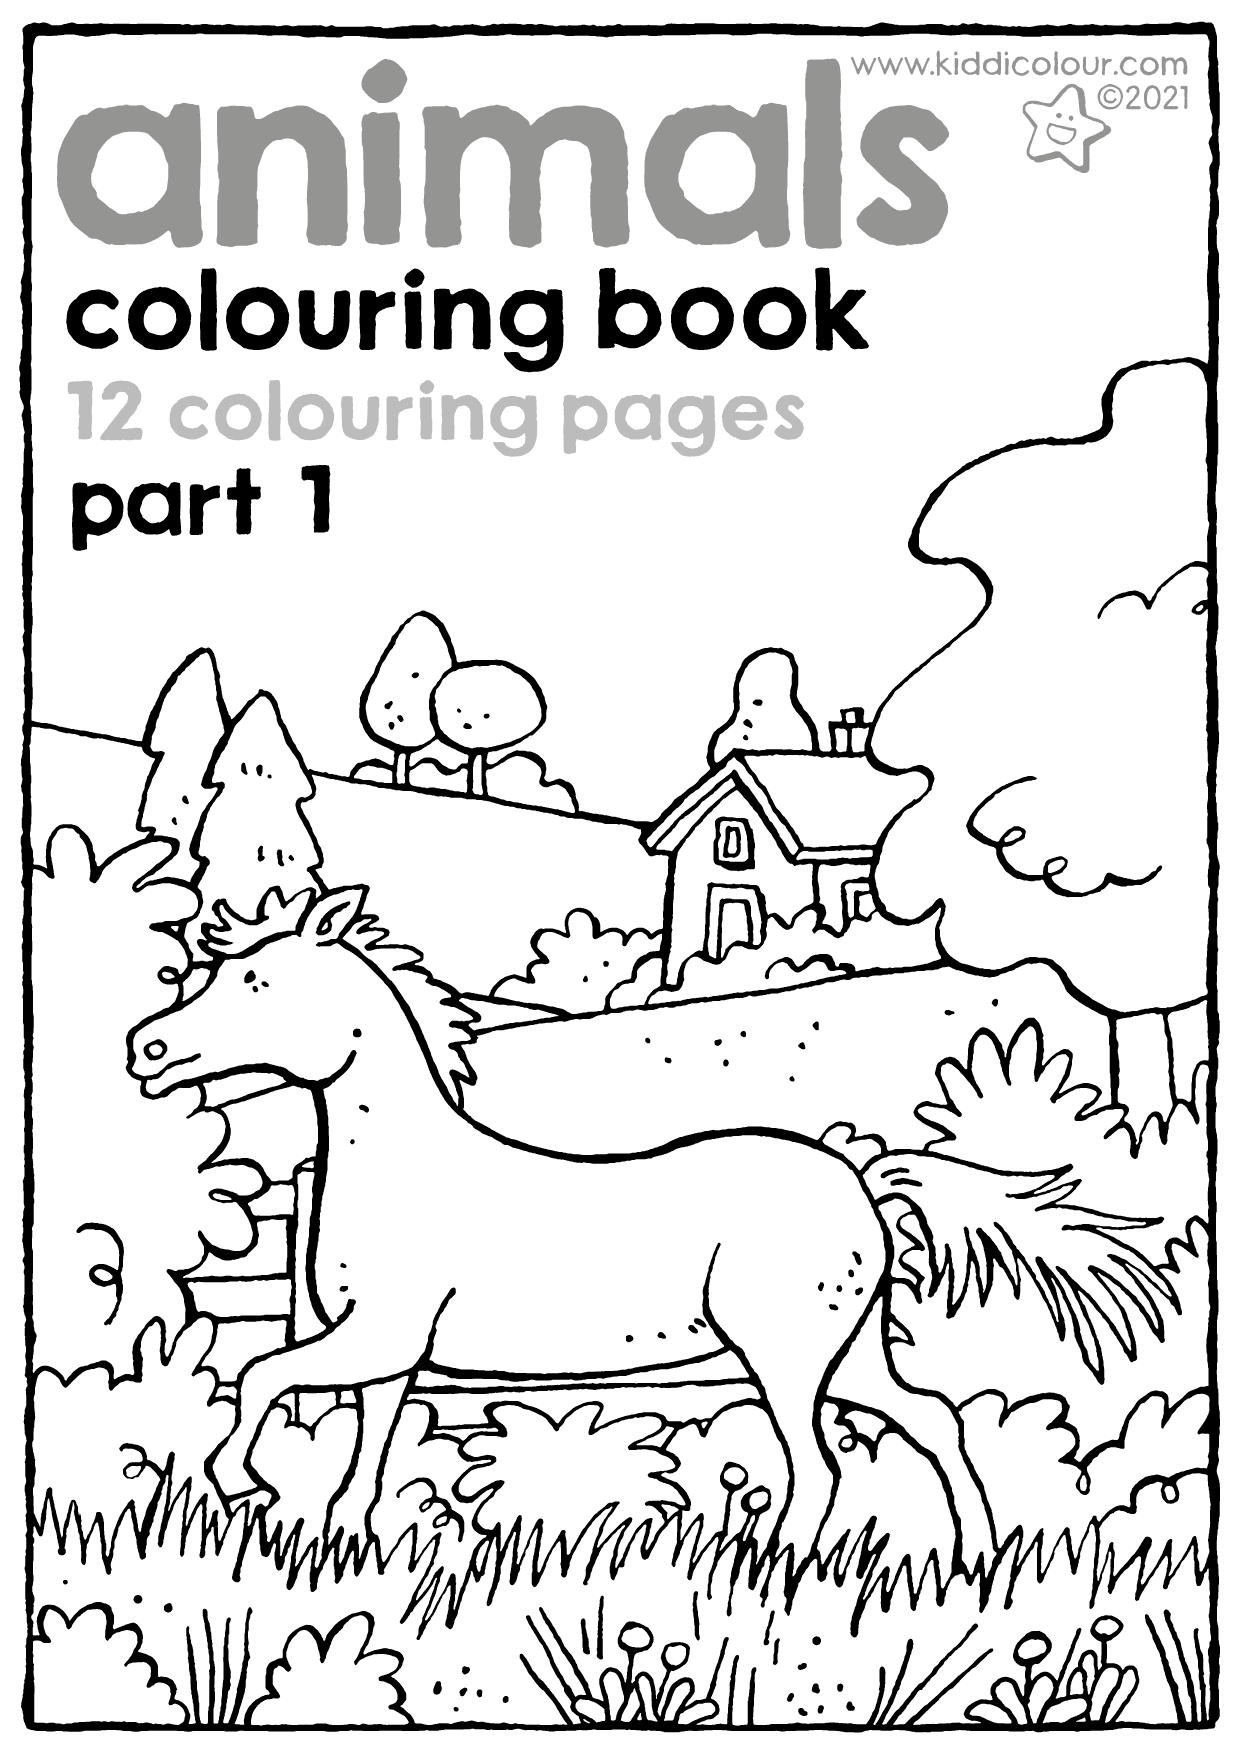 animals colouring book part 1